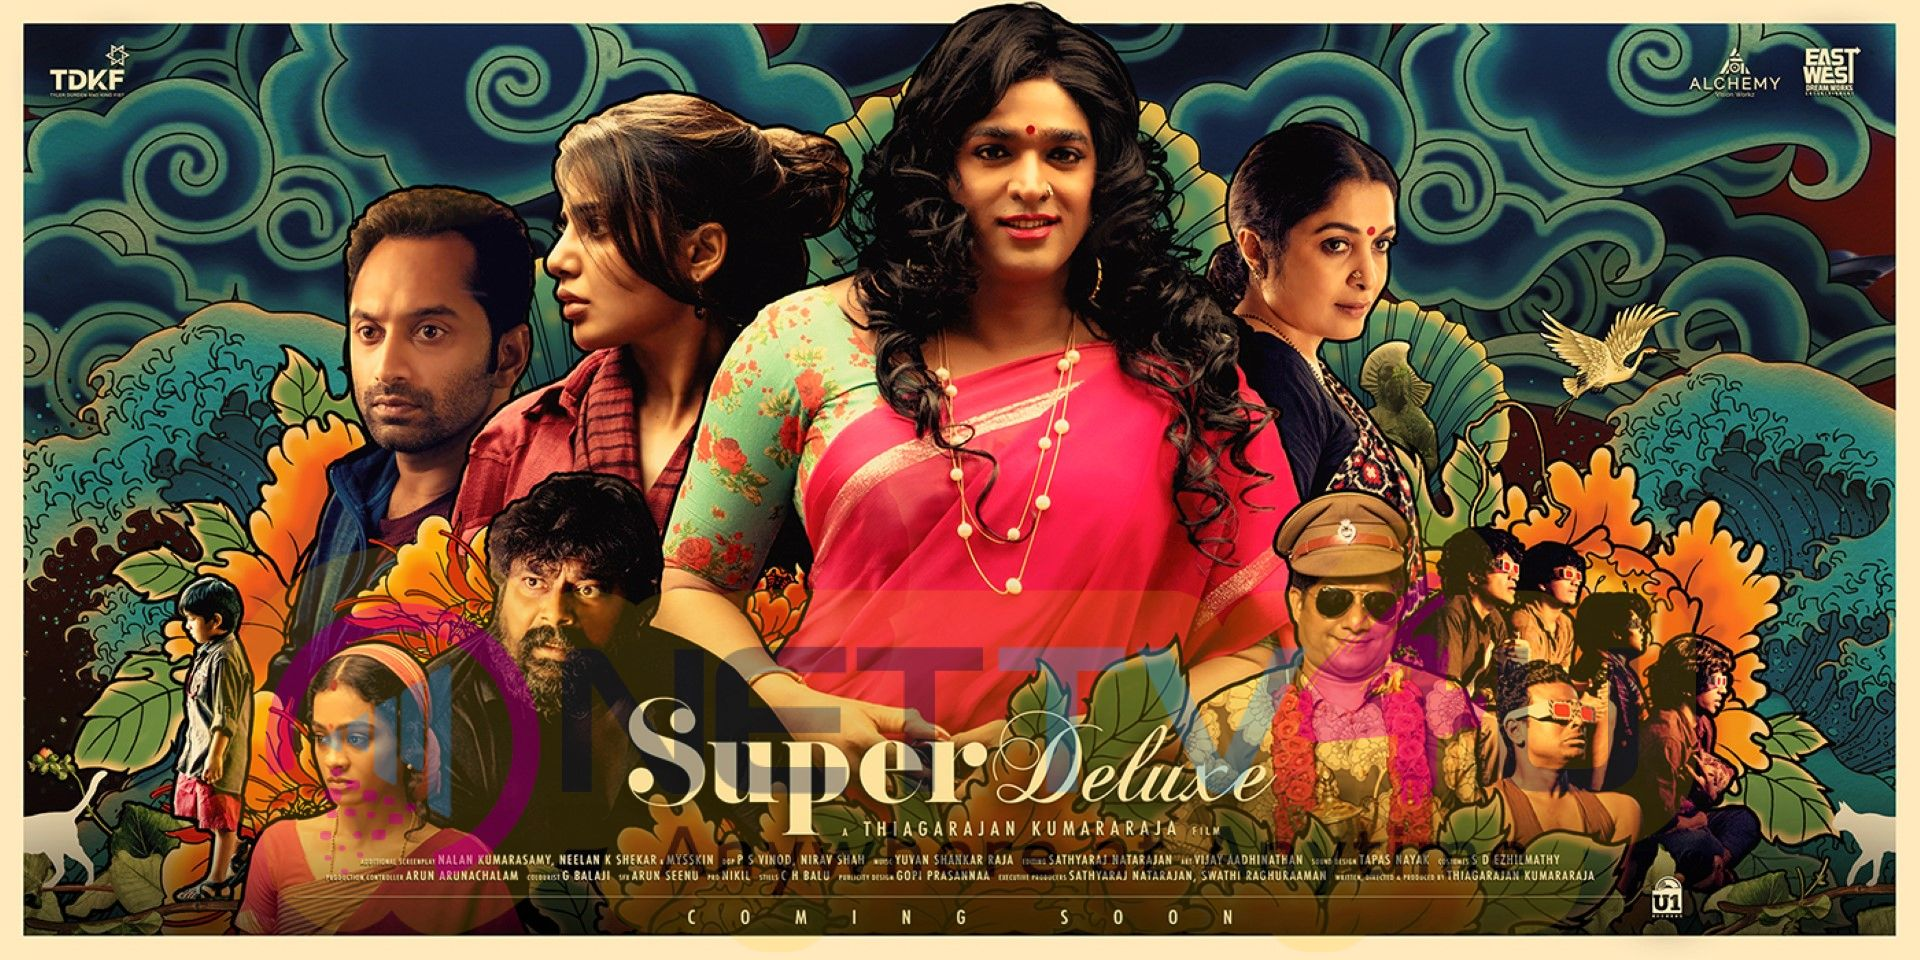 Super Deluxe Movie Poster